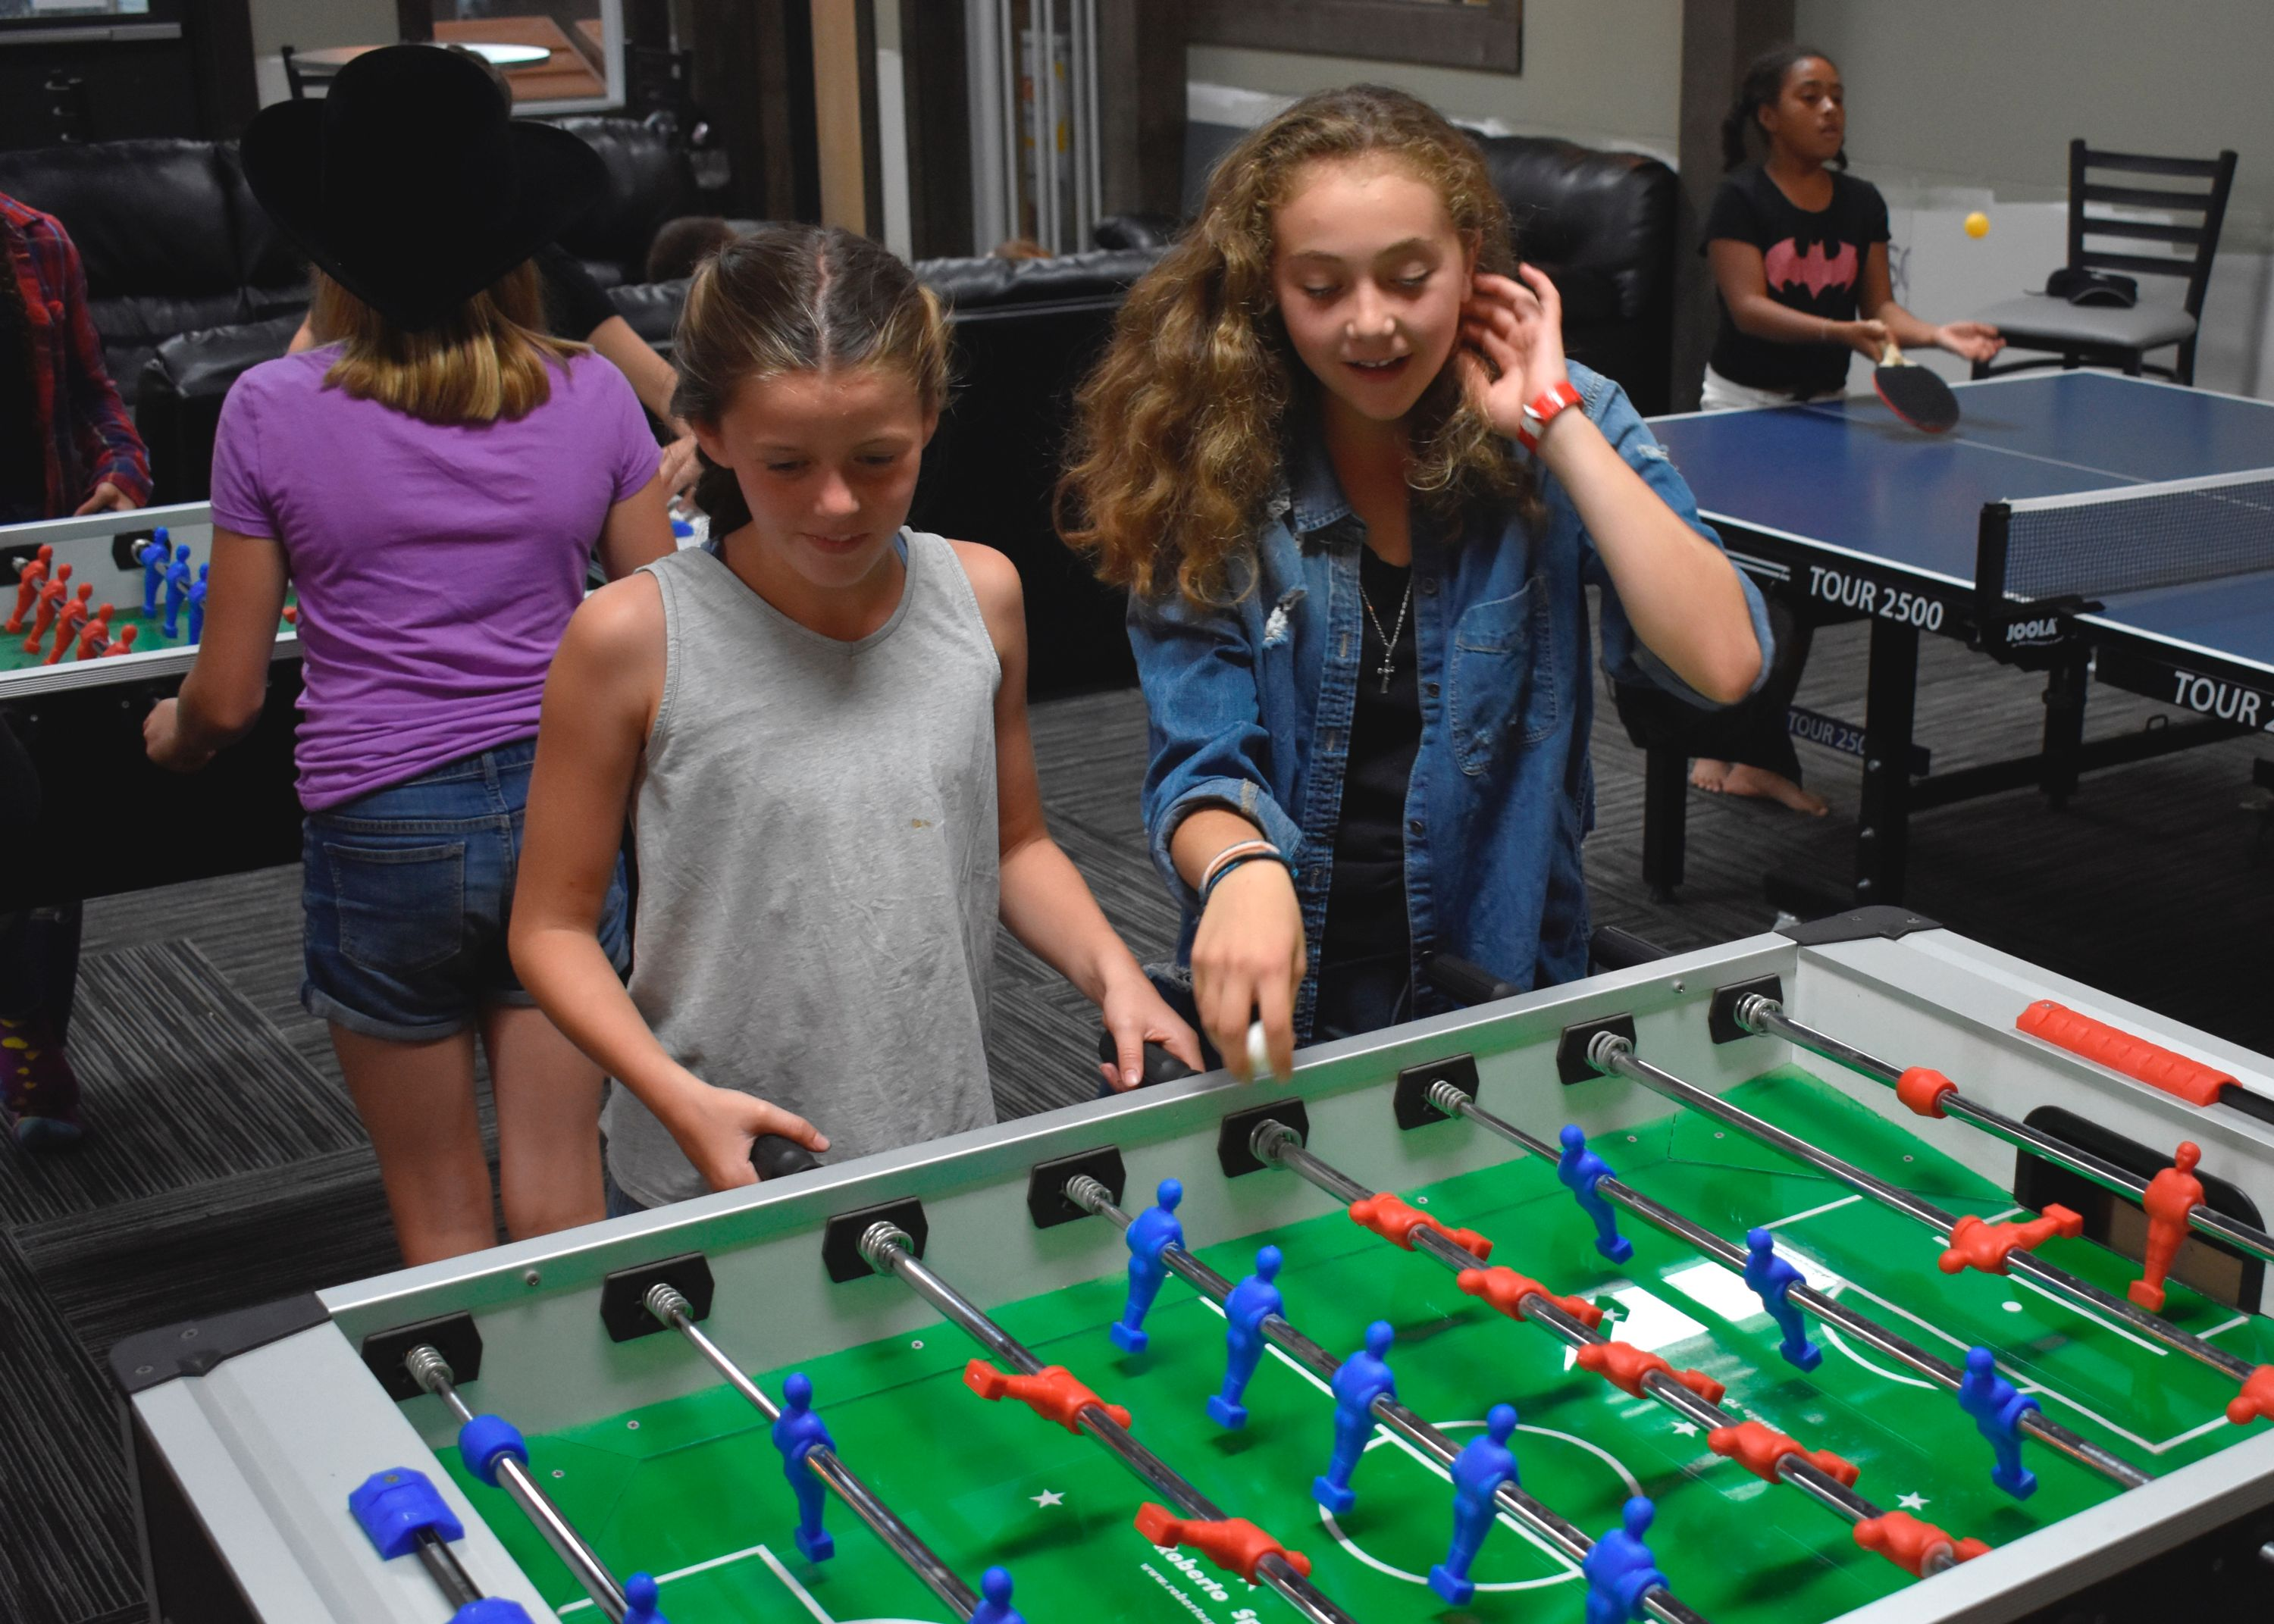 Campers playing games in canyon lounge at christian adventure summer camp in haliburton, ontario